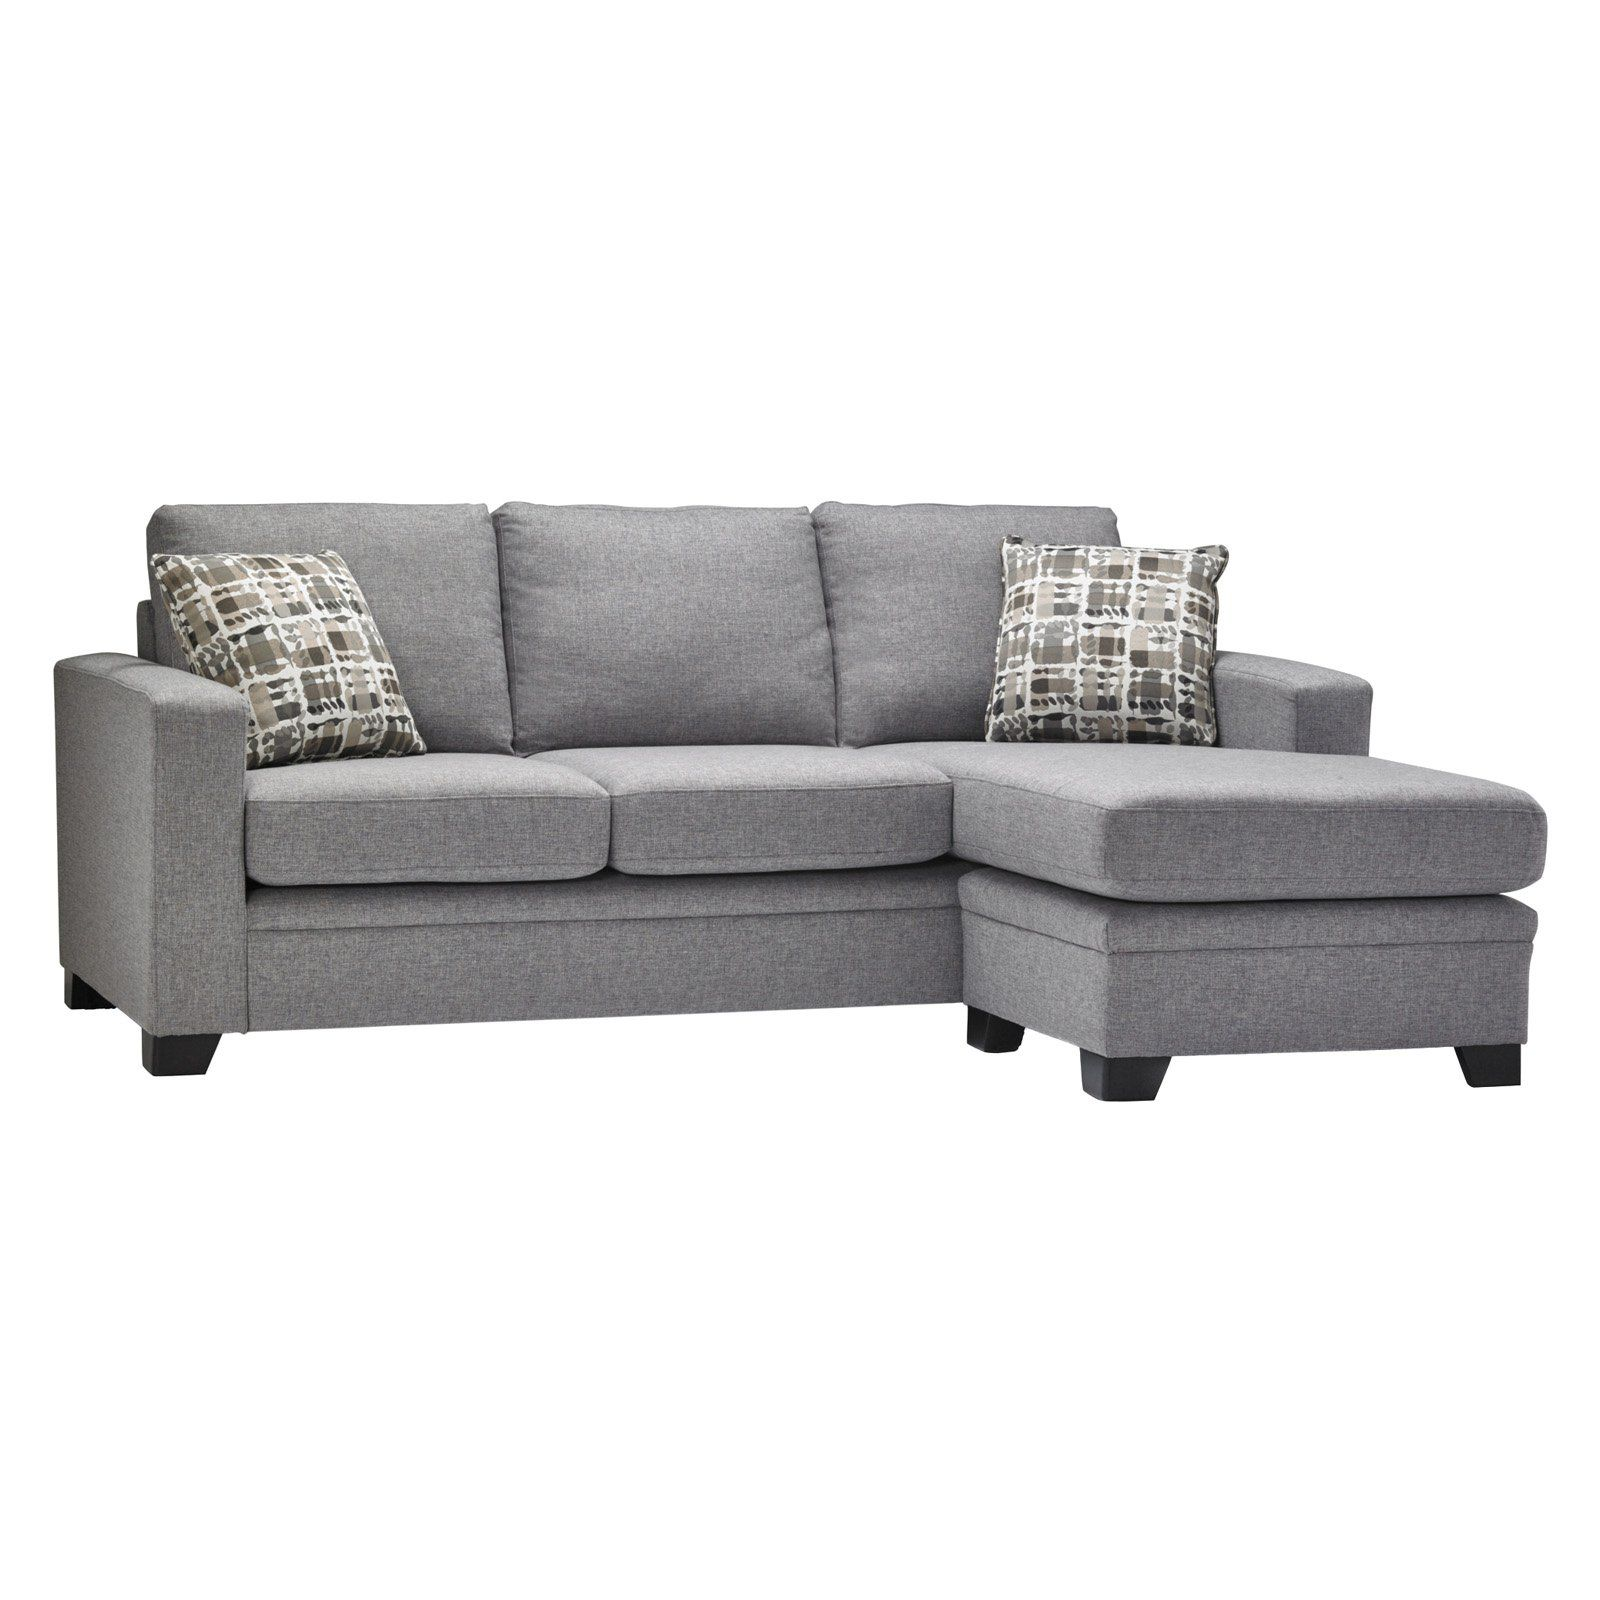 Sofas To Go Ray Sectional Sofa Sectional Sofa Sale Sectional